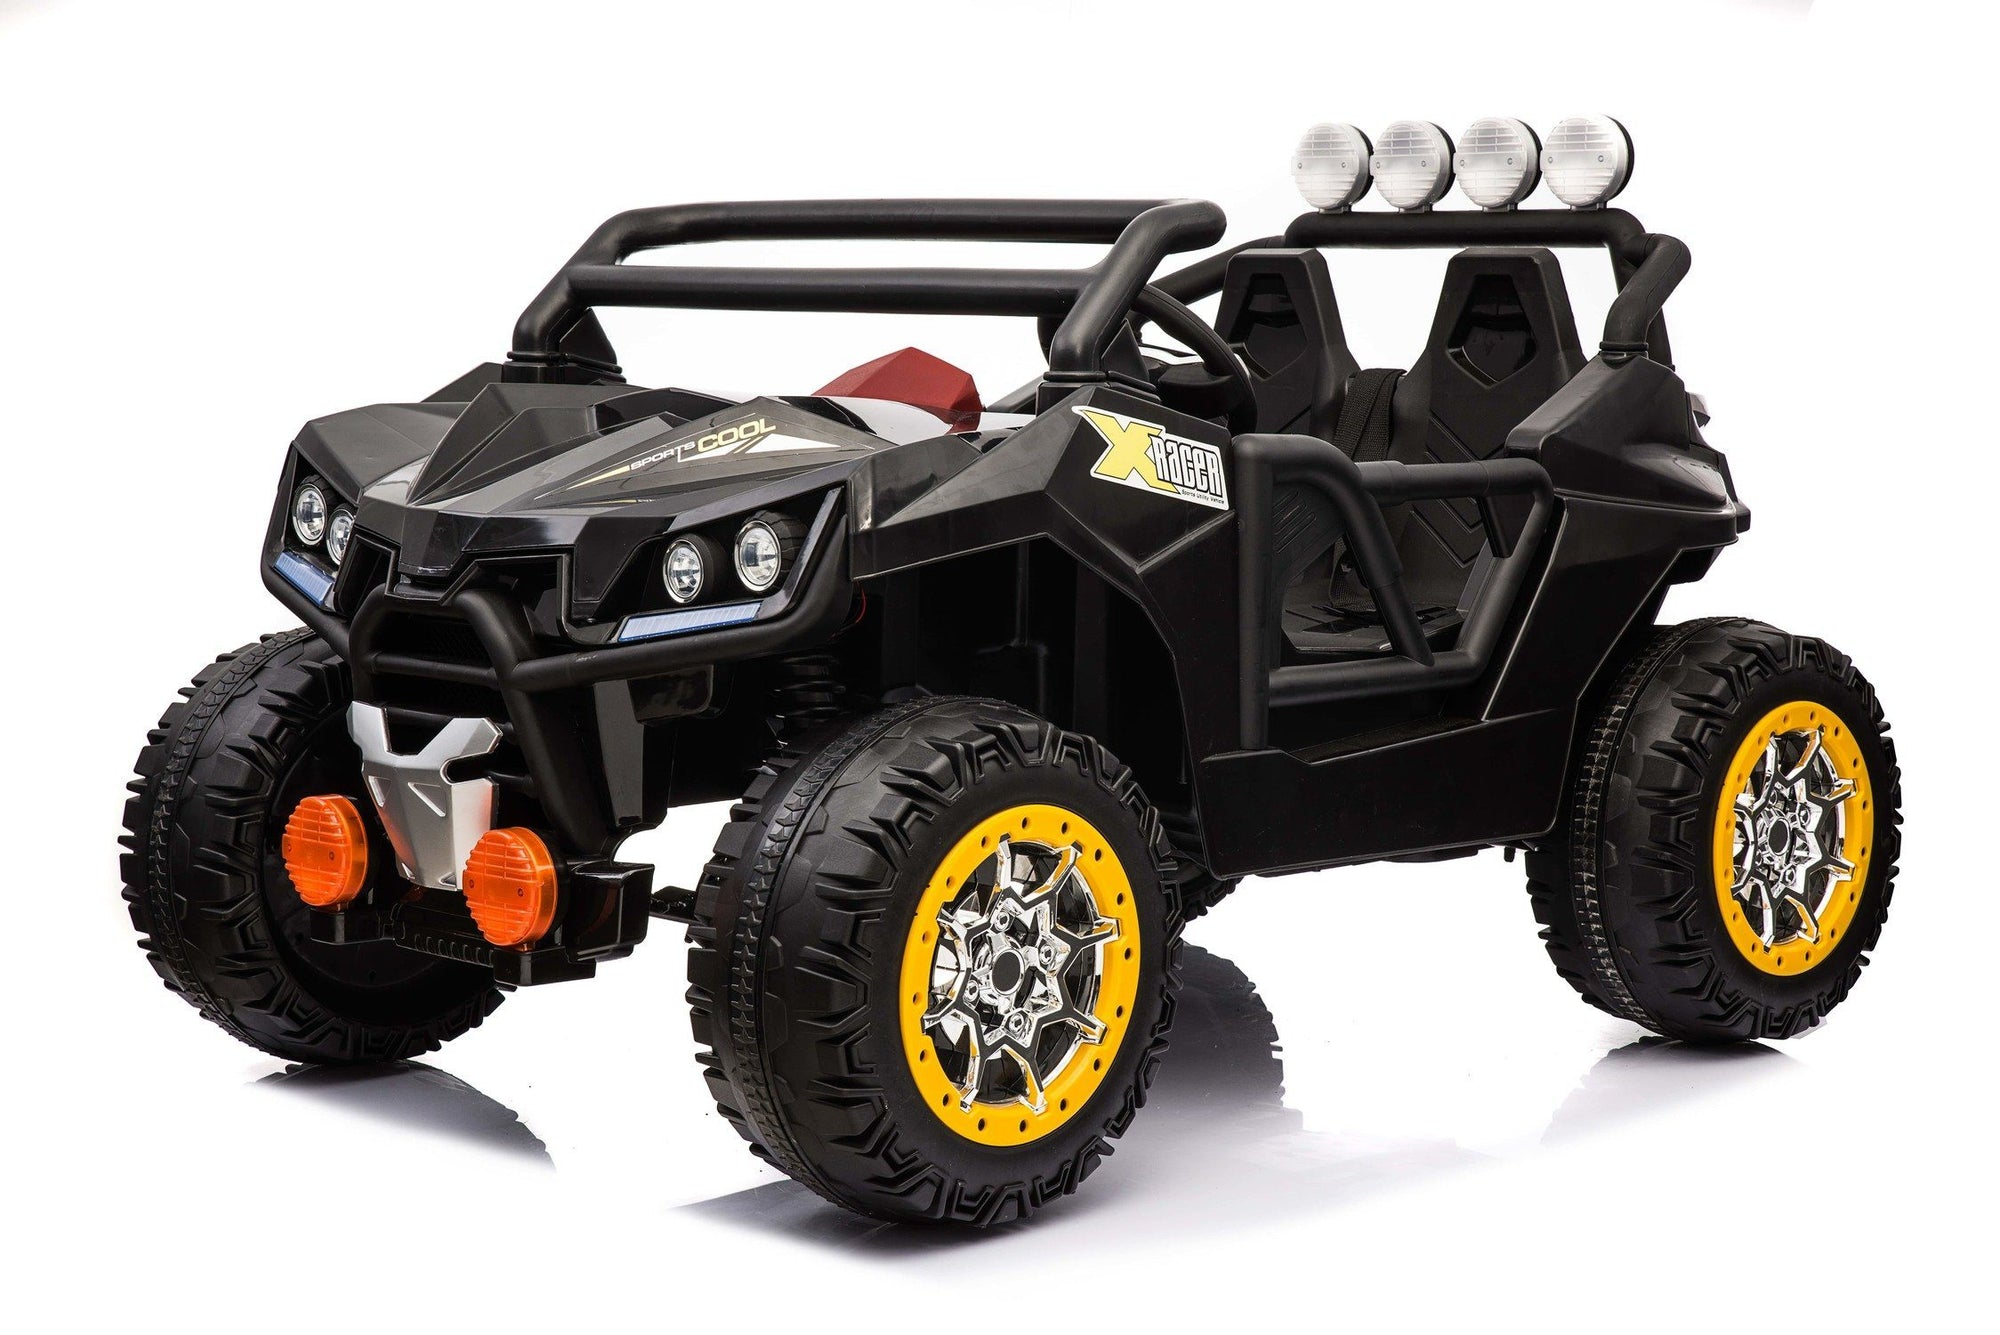 New 12v Electric Kids Ride-on Buggy ATV | Black with Yellow Wheels Quad Bikes Mini Motos